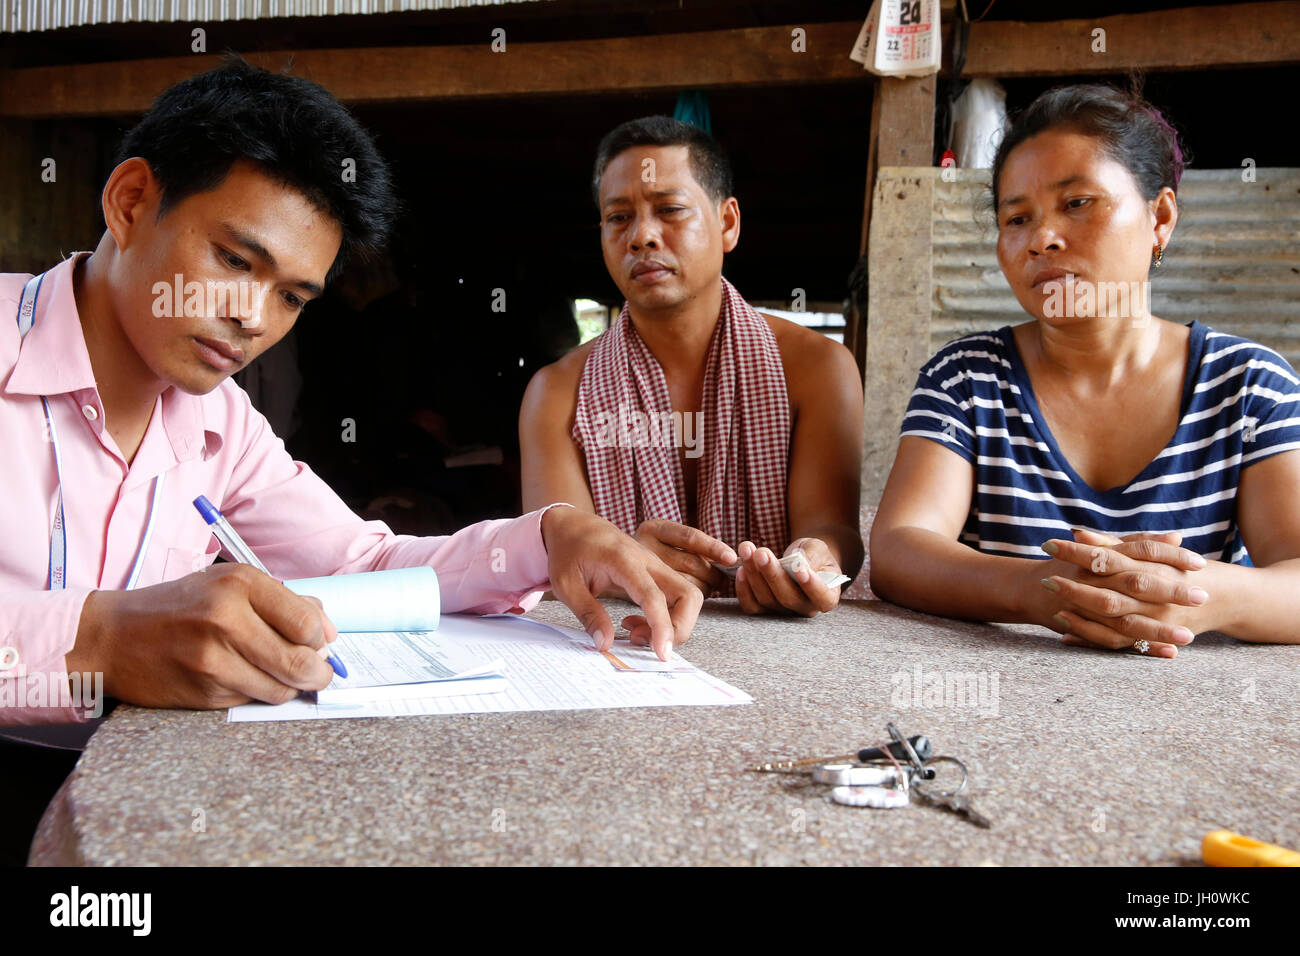 Chamroeun microfinance loan officer with clients Cambodia. - Stock Image